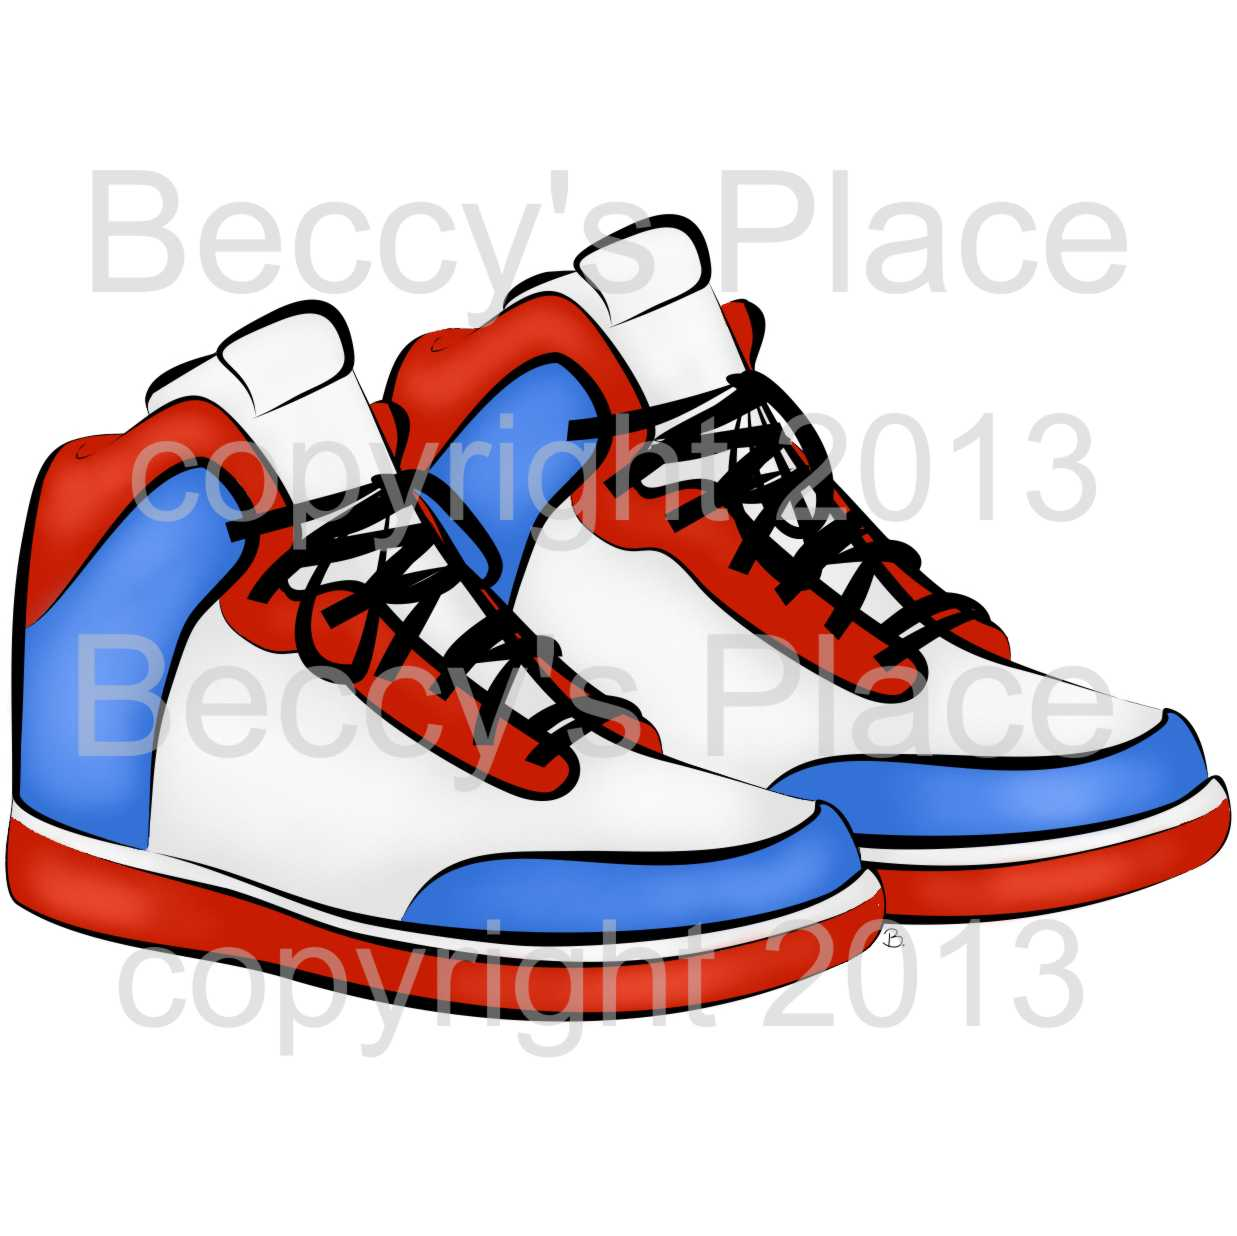 1237x1236 Shoes Basketball Clipart, Explore Pictures